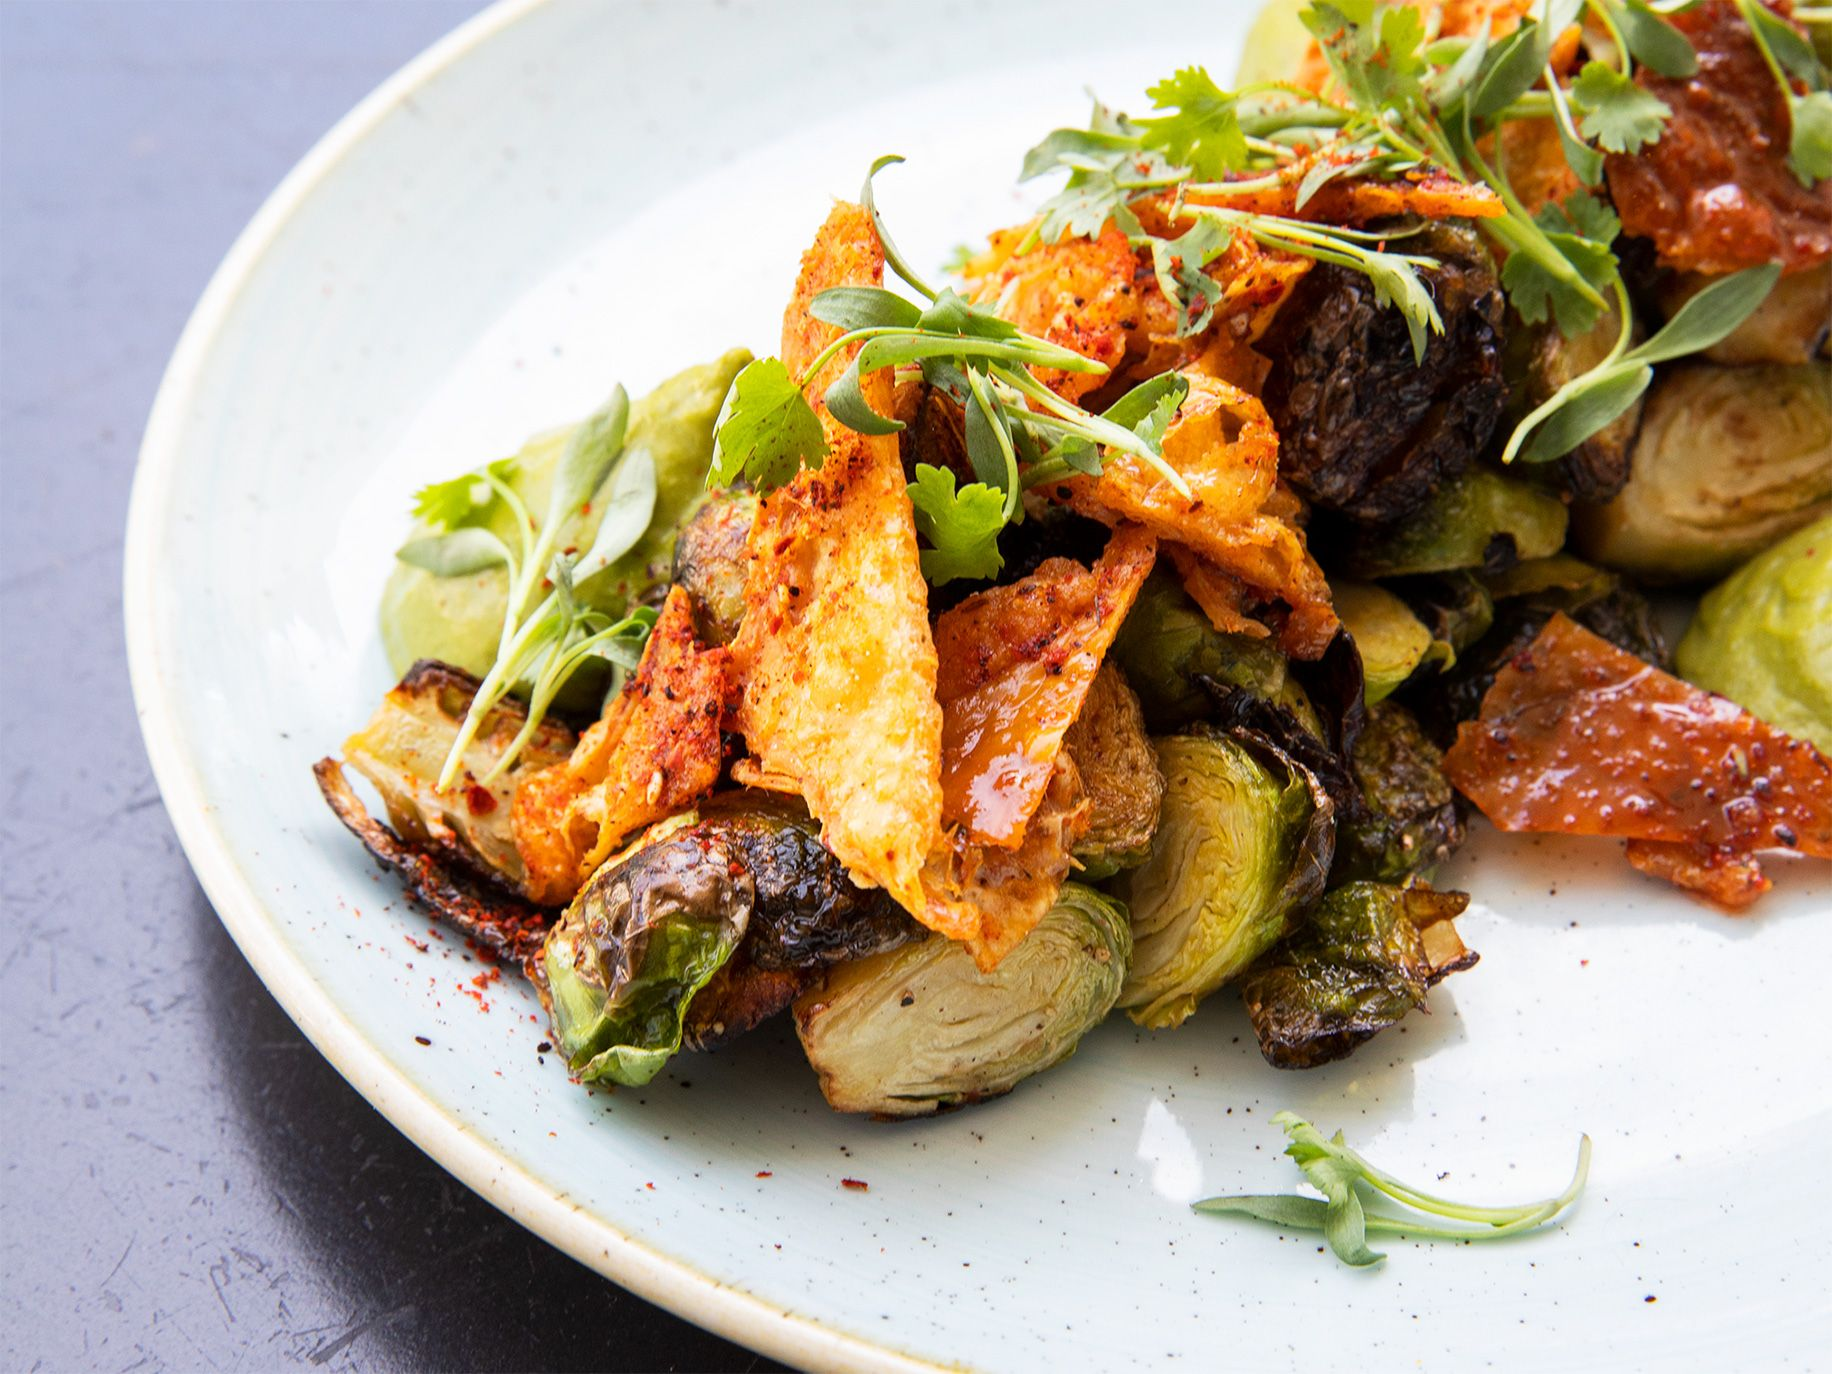 A dish of brussels sprouts includes chicken skin, revealing chef Peter McNee's inventive combinations.